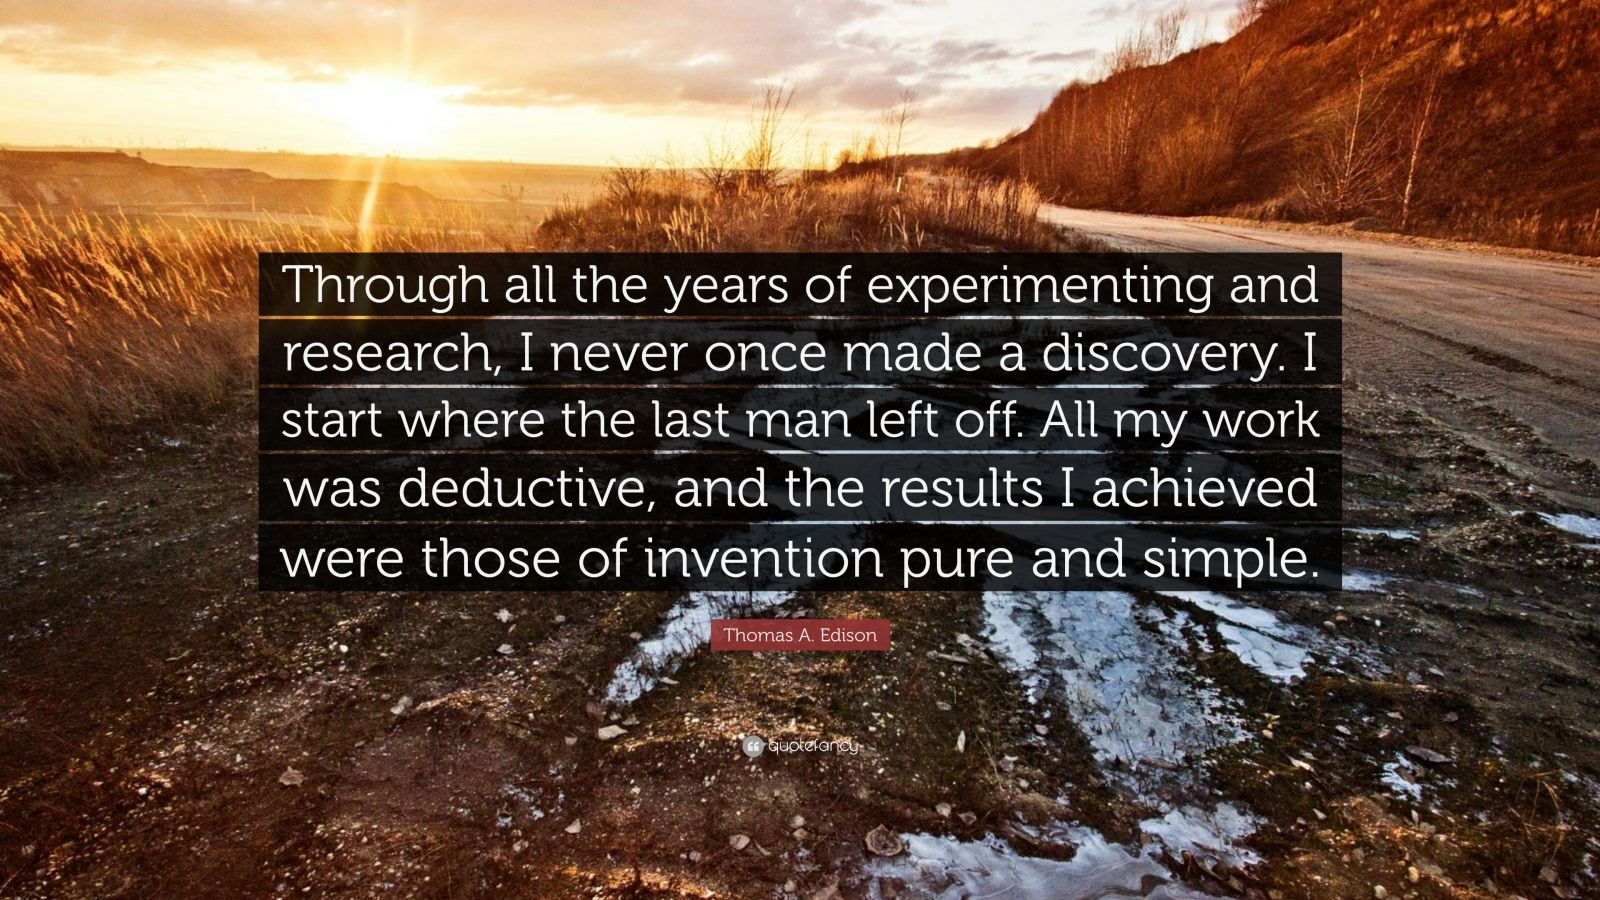 """Thomas A. Edison Quote: """"Through all the years of experimenting and research, I never once made a discovery. I start where the last man left off. All my work was deductive, and the results I achieved were those of invention pure and simple."""""""